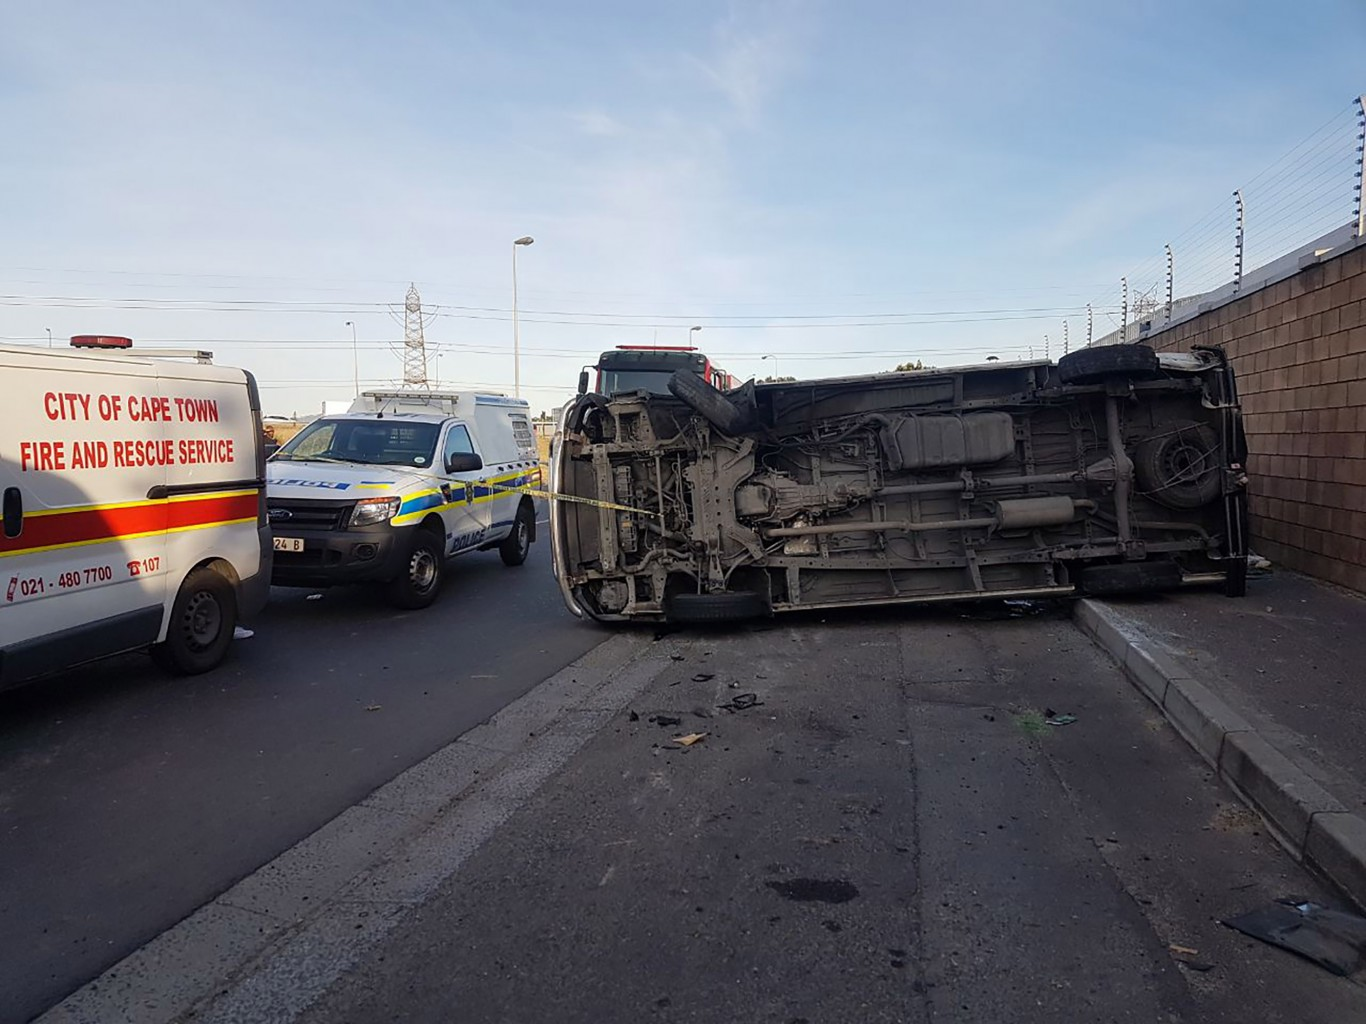 Nine injured when taxi overturned in Epping